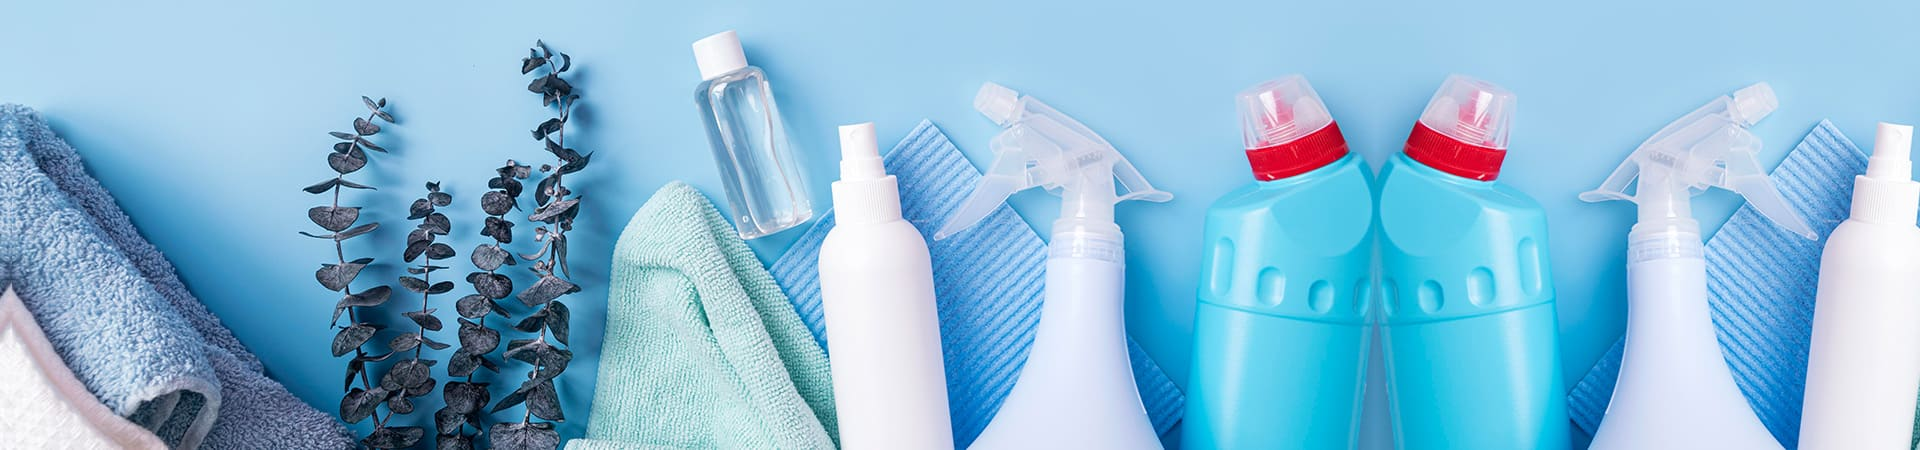 janitorial sanitizing and cleaning manufacturers